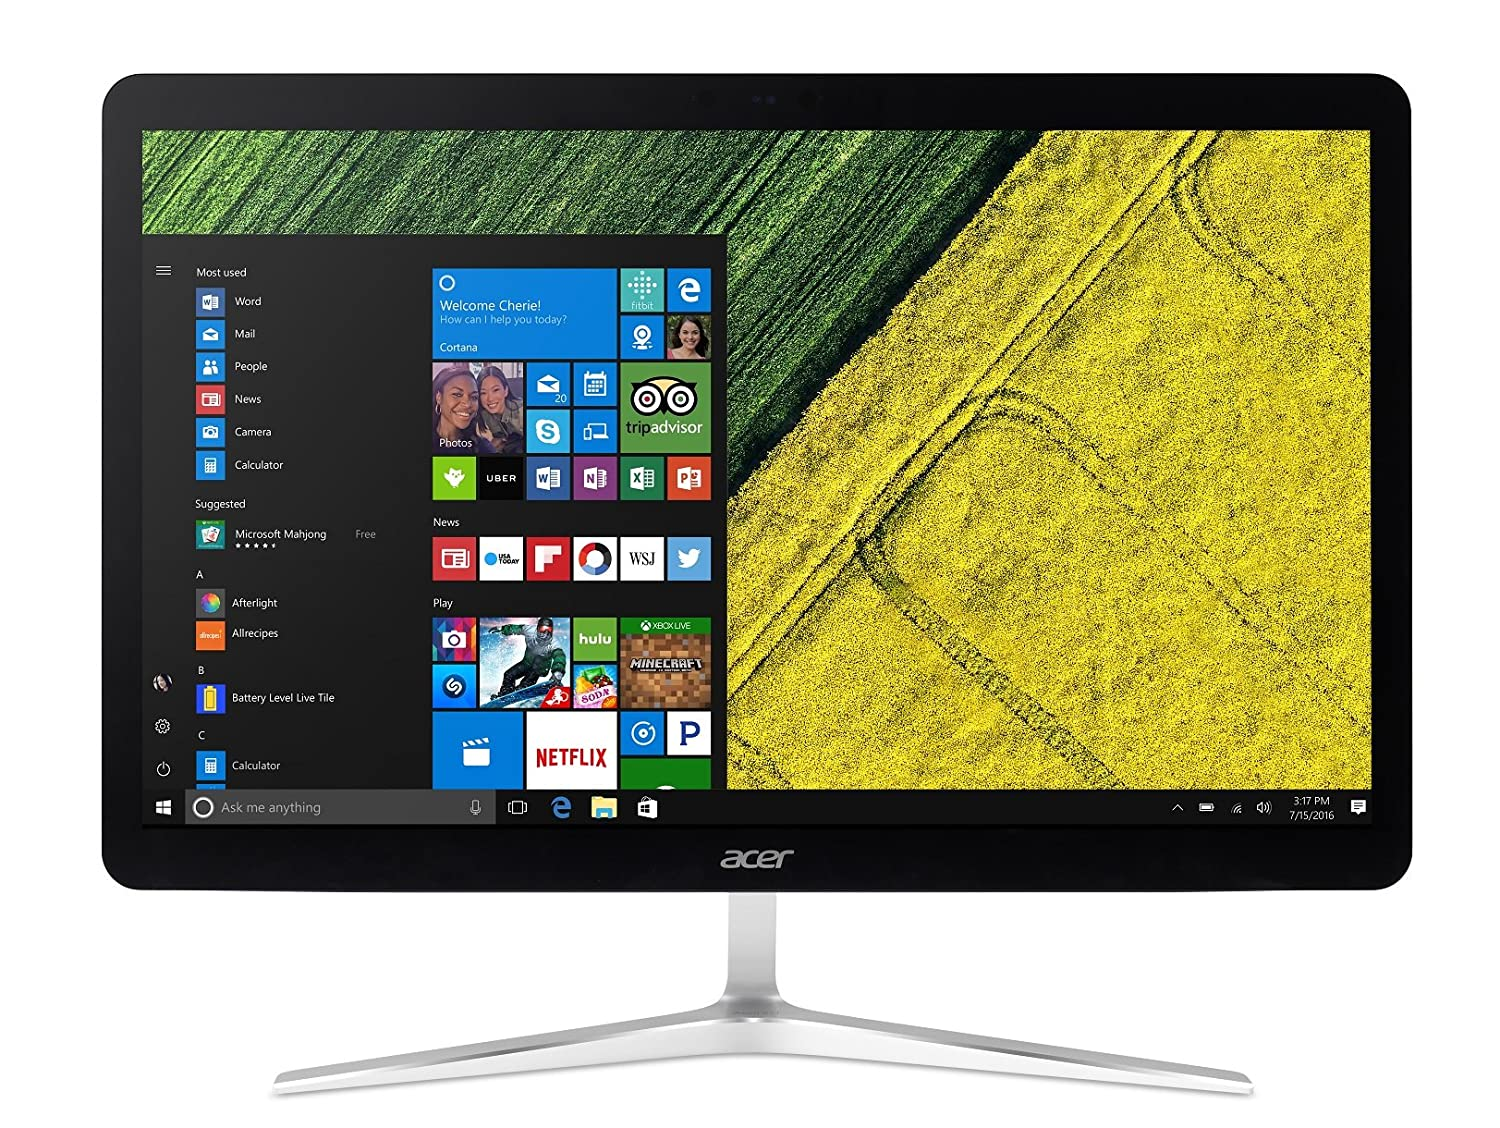 Acer Aspire U27 U27-880 Desktop PC All in One con Processore Intel Core i5-7200U, RAM 8 GB DDR4, 1000 GB HDD, Display 27' FHD Multitouch, Windows 10 Home, Argento Display 27 FHD Multitouch DQ.B8SET.012